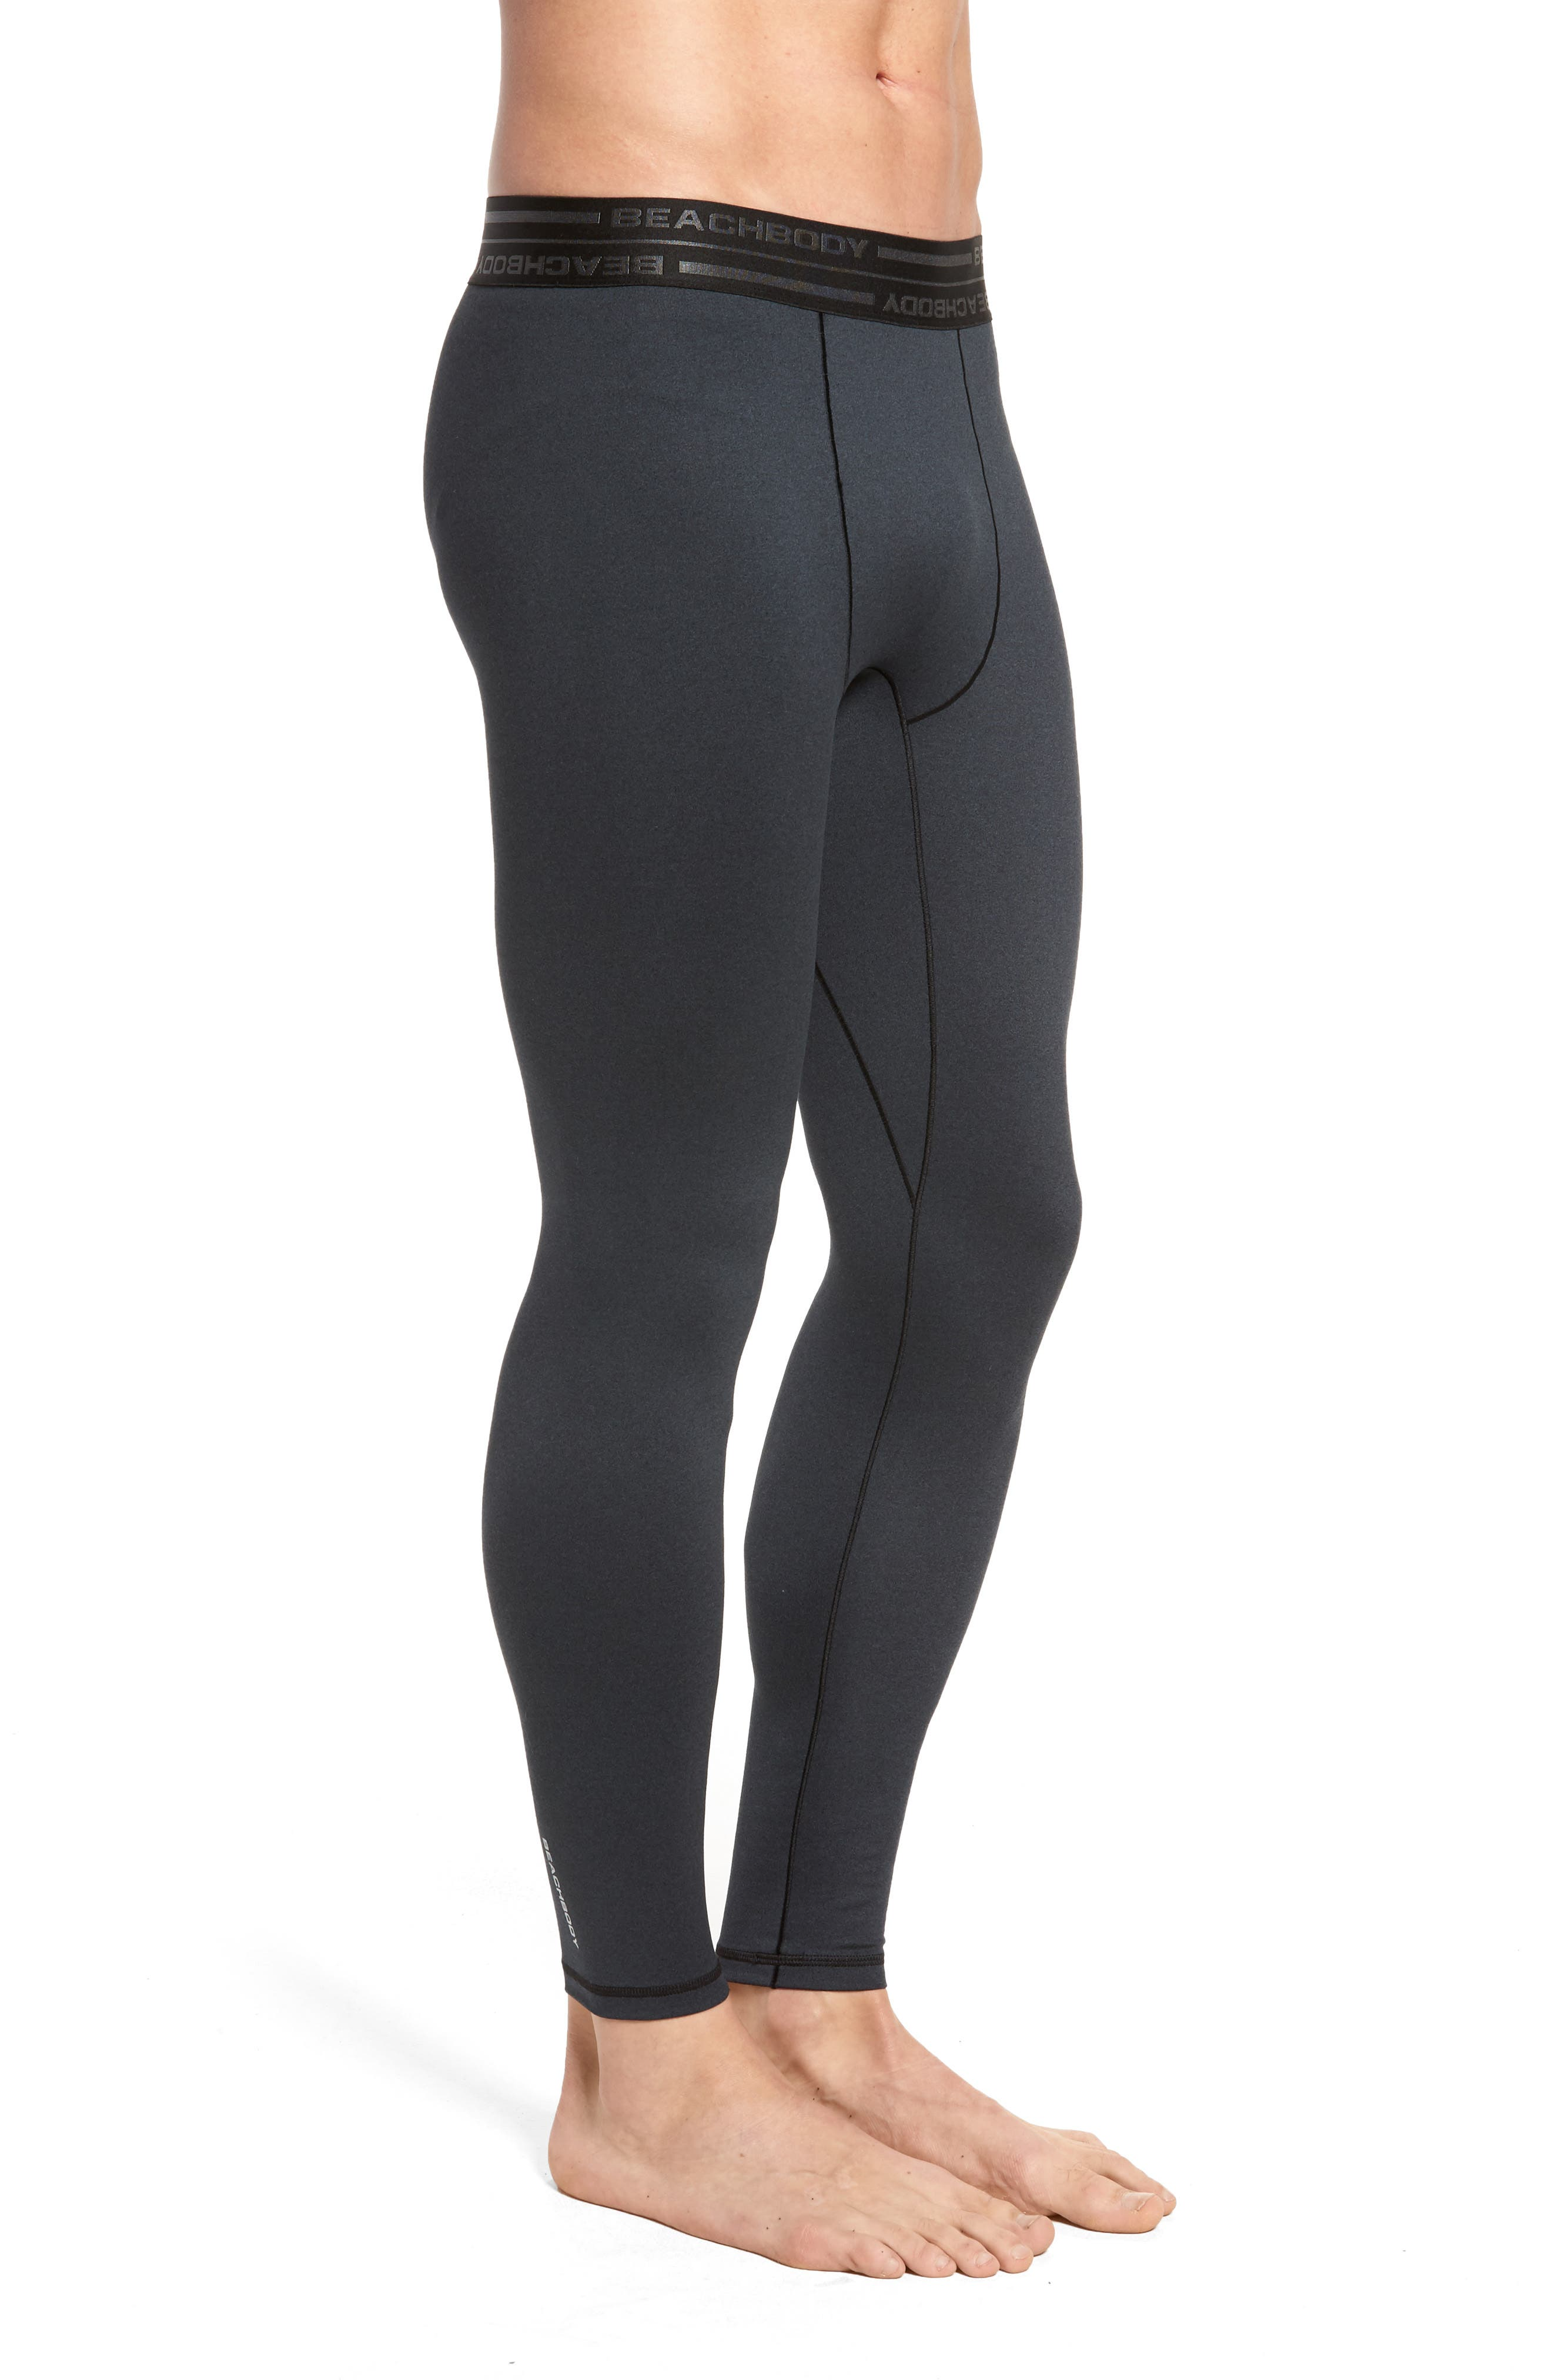 Energy Tights,                             Alternate thumbnail 3, color,                             001